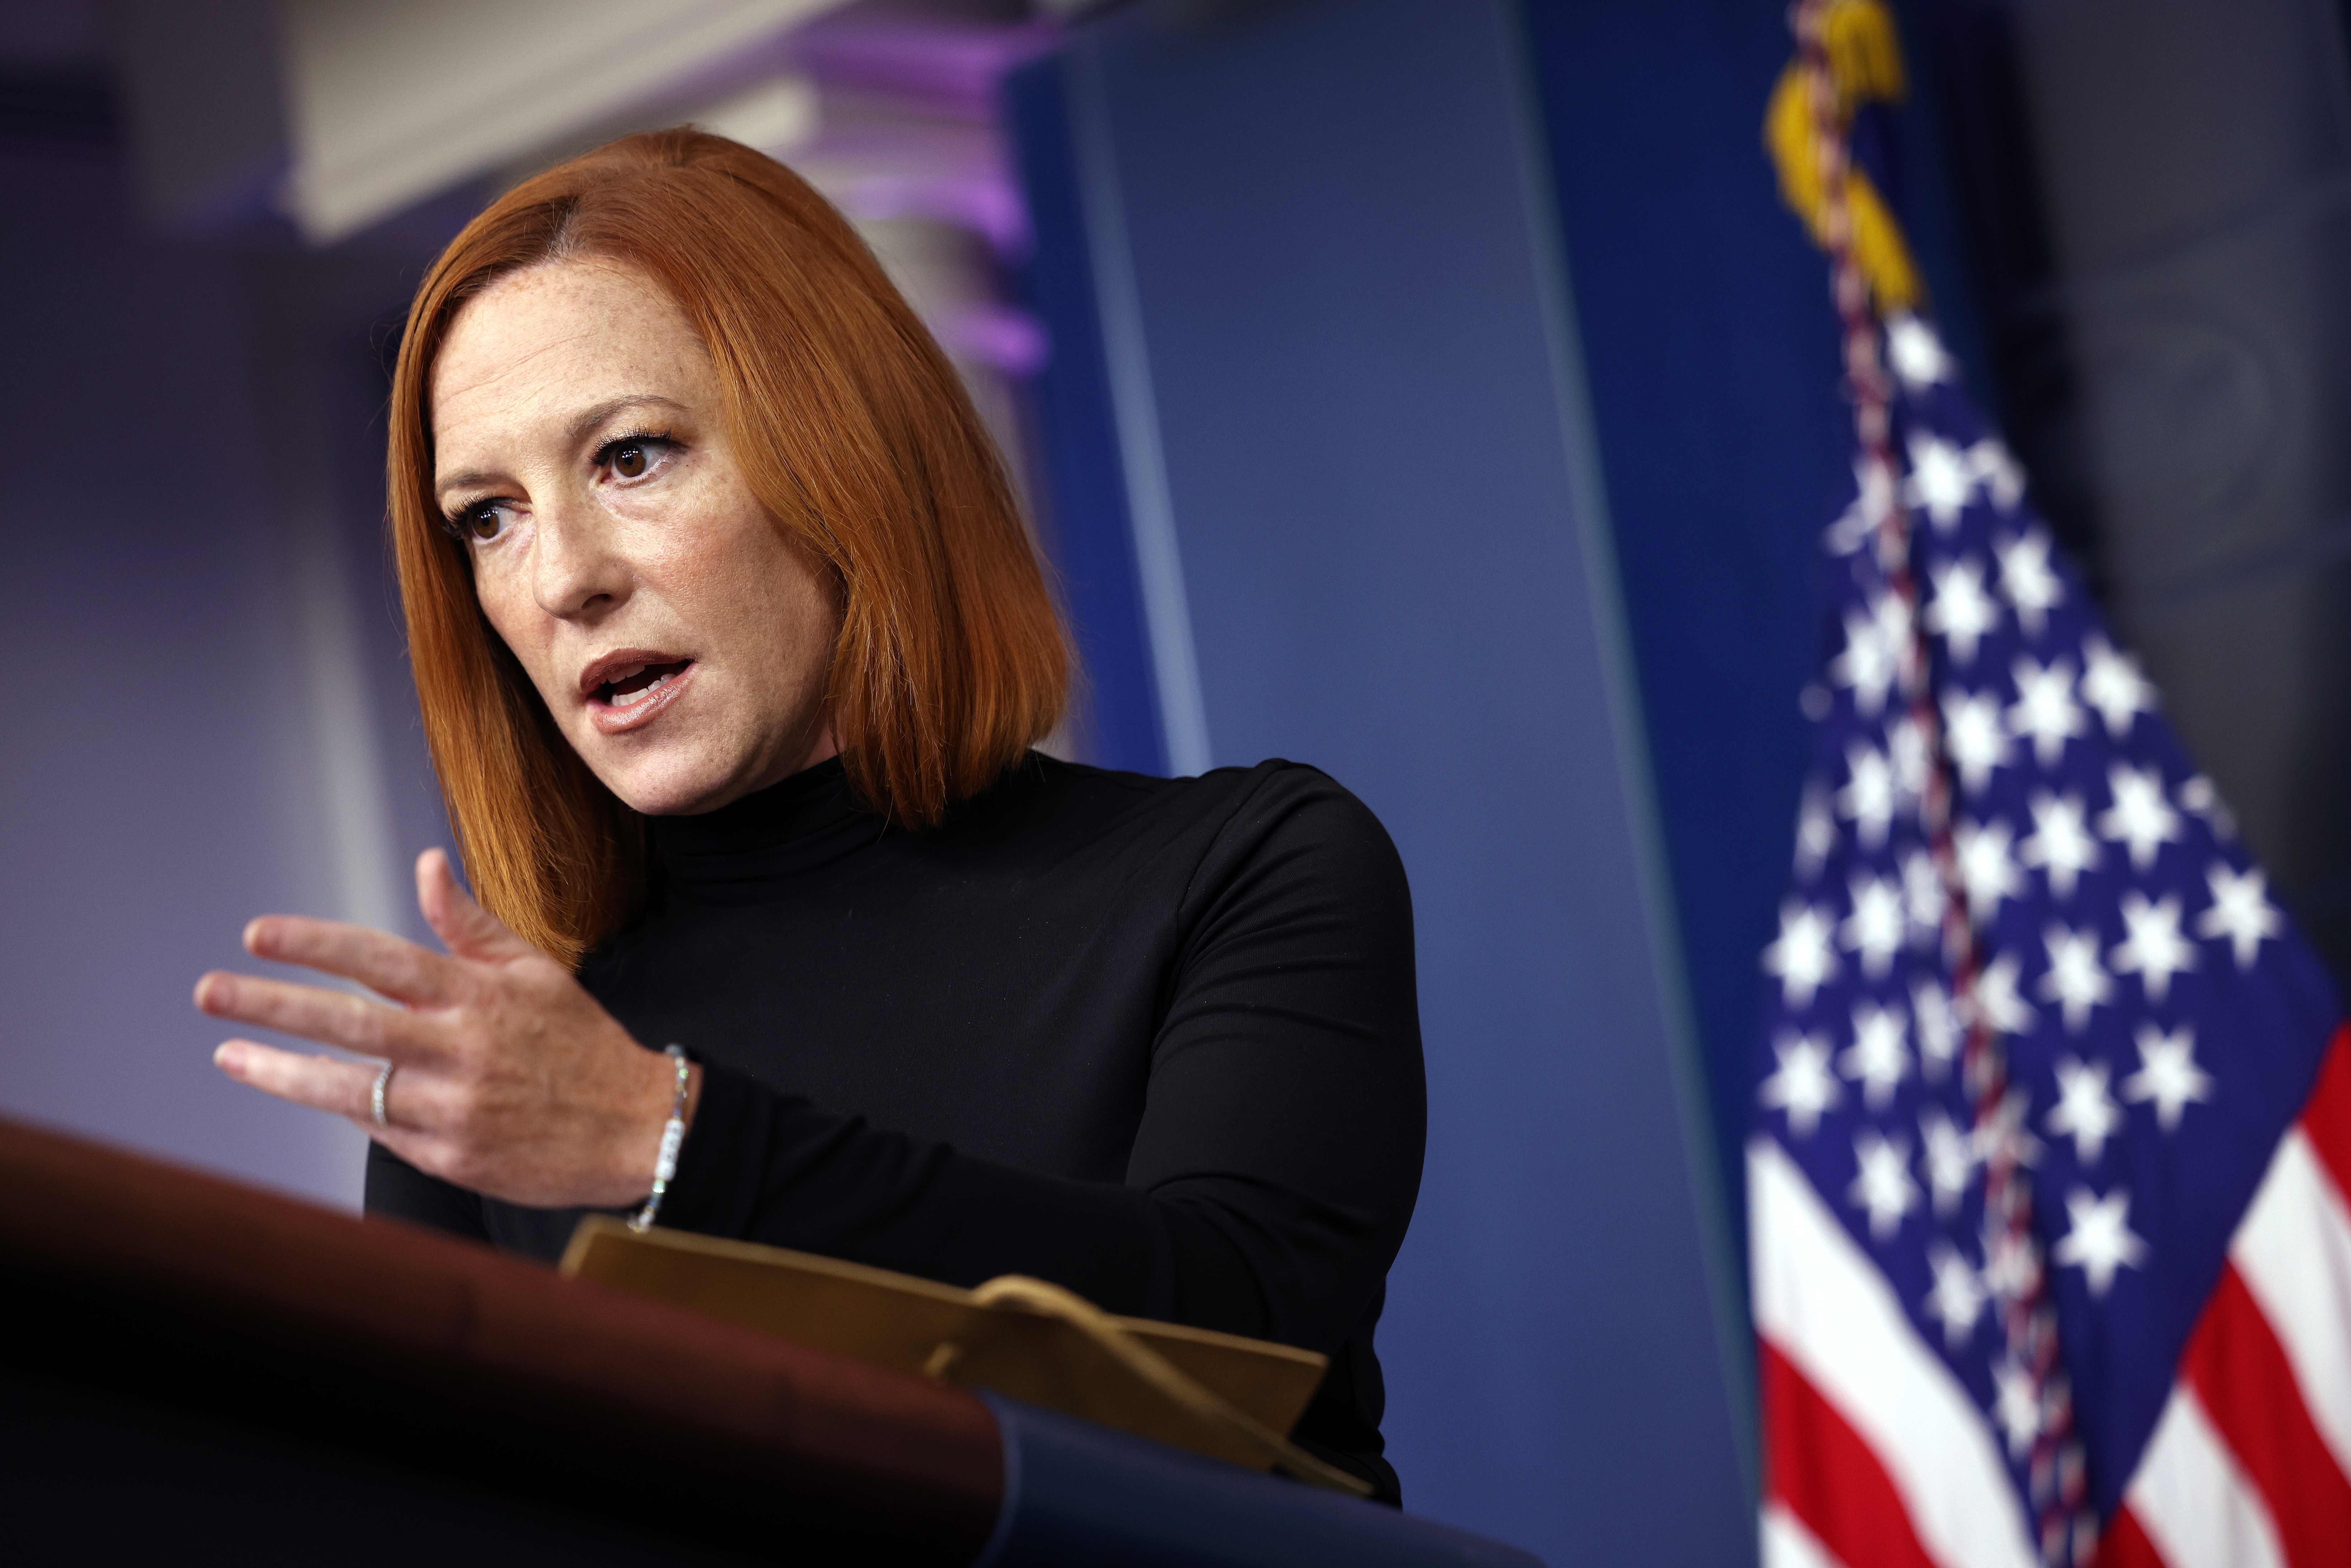 White House Press Secretary Jen Psaki speaks during a press briefing at the White House in Washington, D.C. (Photo by Kevin Dietsch/Getty Images)